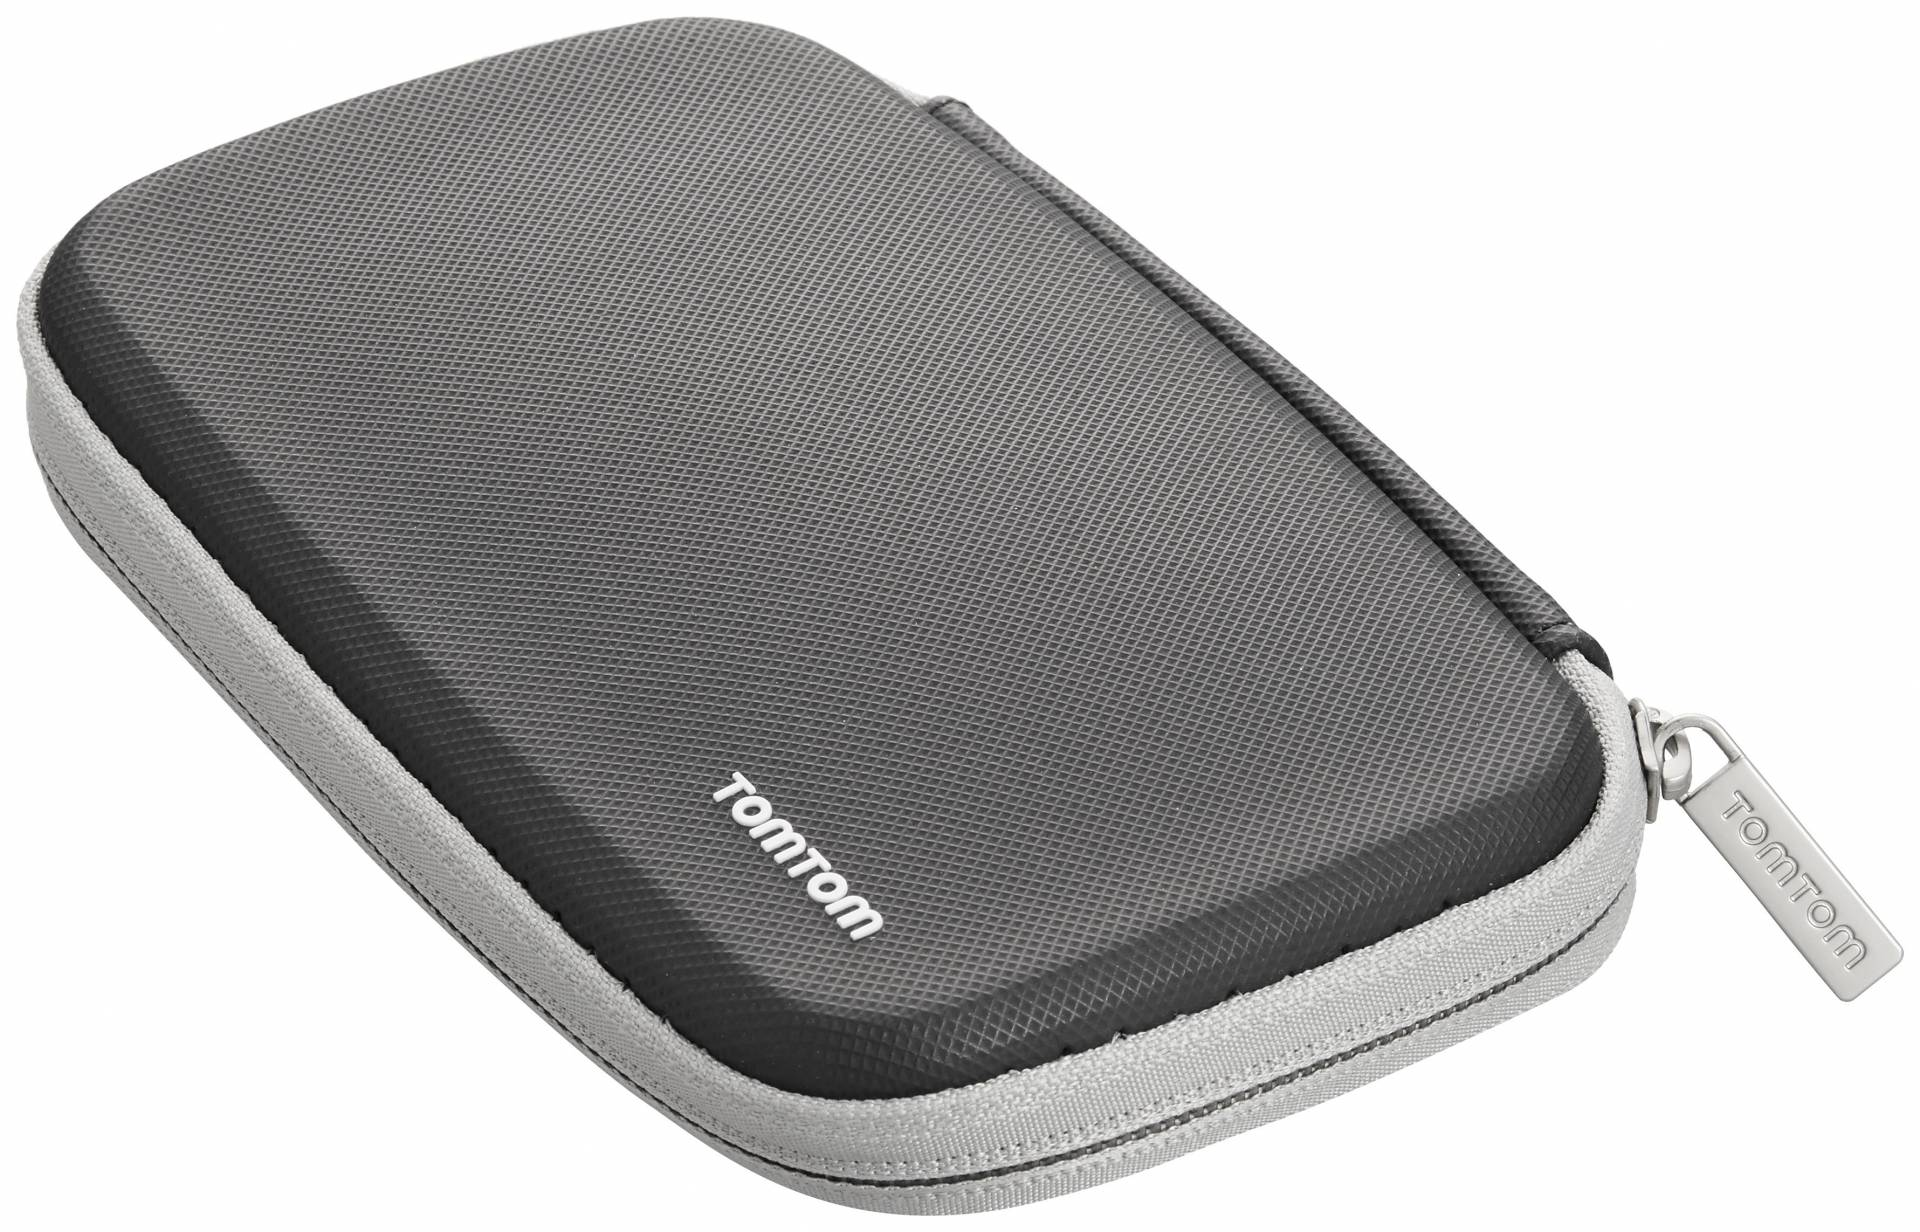 TomTom - 6 Inch Classic - Carry Case from TomTom